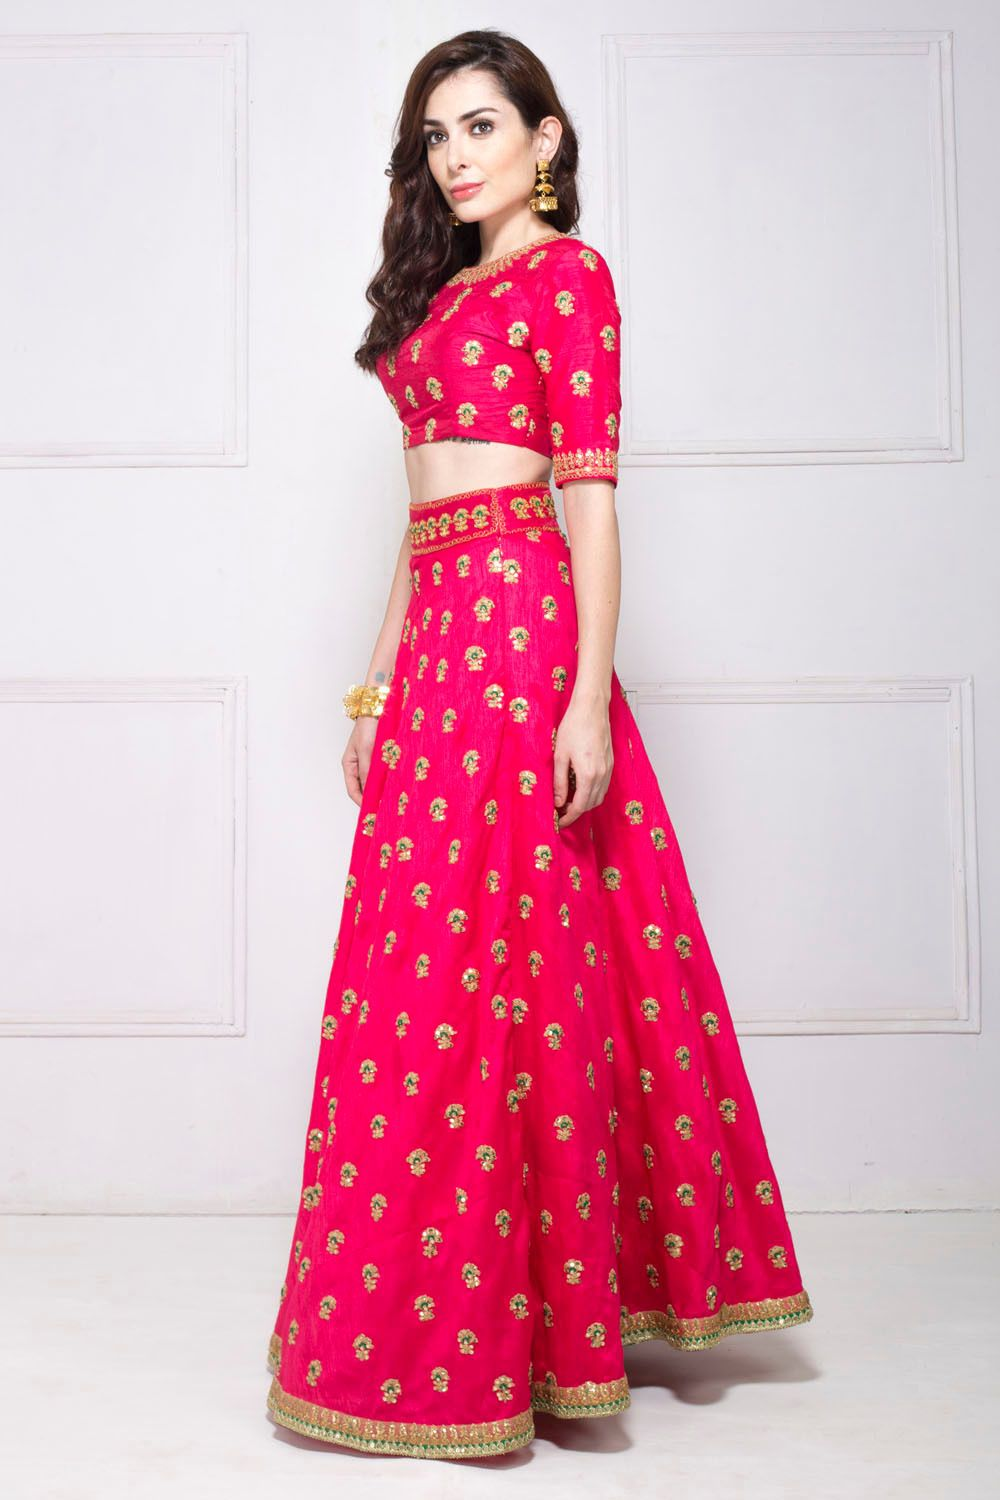 ba23aad6ca Flyrobe - Rent Branded & Designer Clothes in India for Party, Wedding,  Cocktail, Holiday & Festive Occasion. Quality Assurance · Easy Returns ·  Free ...